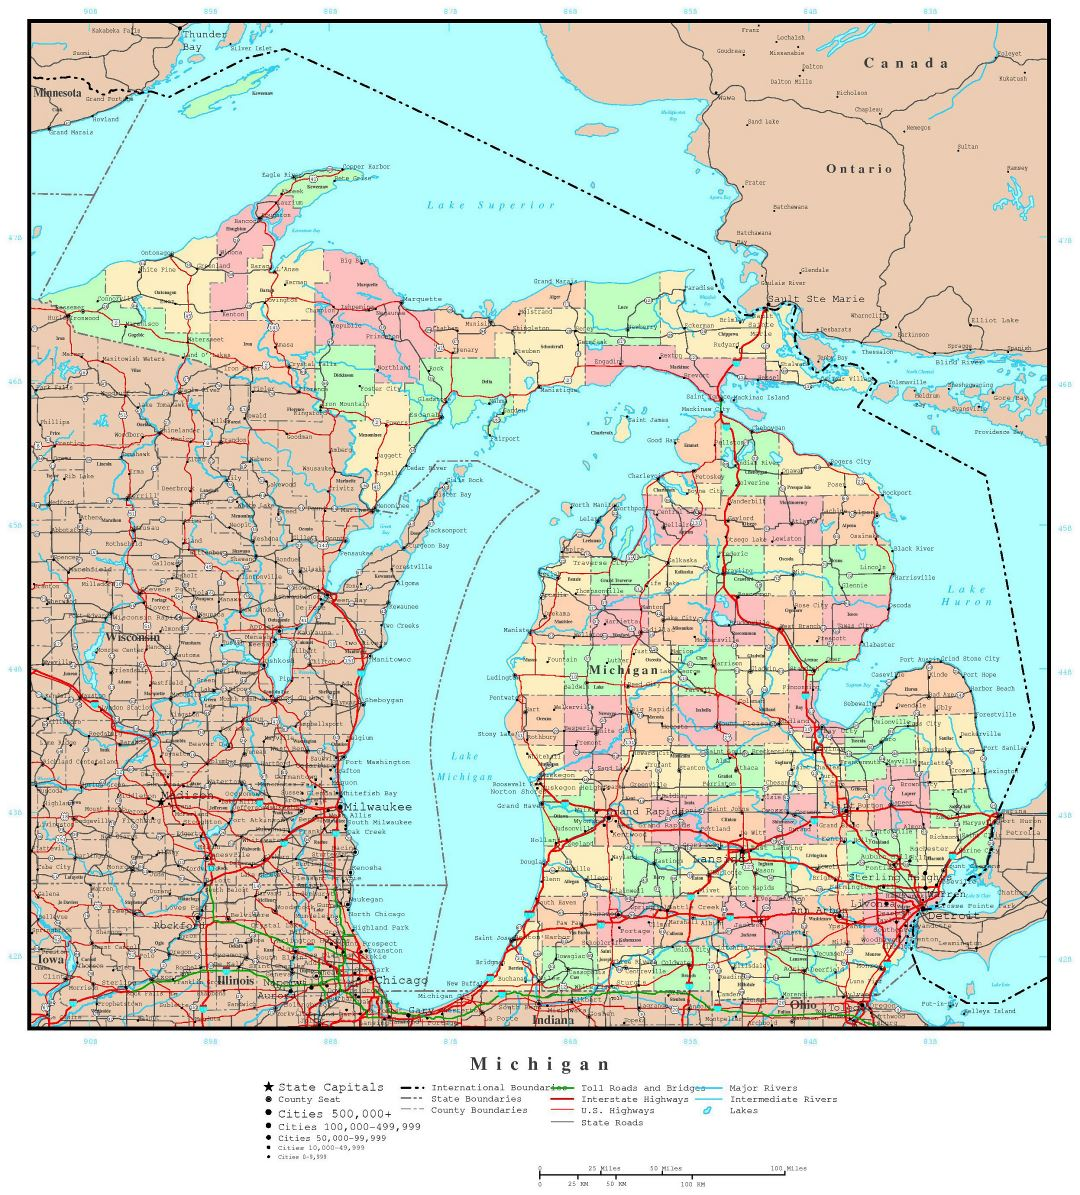 Large Detailed Administrative Map Of Michigan State With Roads - Michigan state usa map